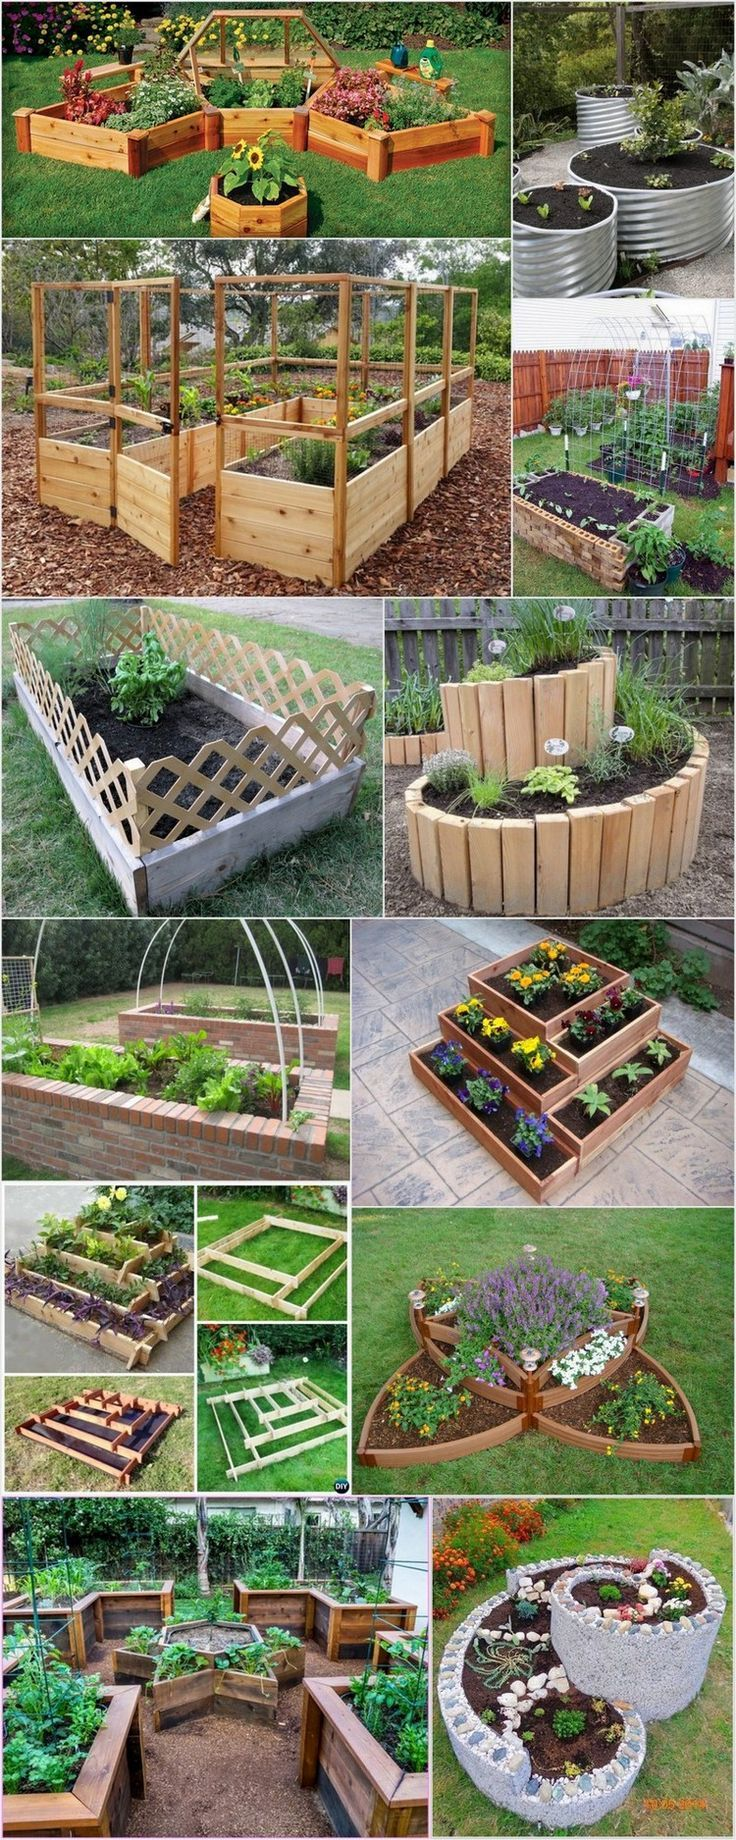 Herb Garden Outdoor Raised Beds